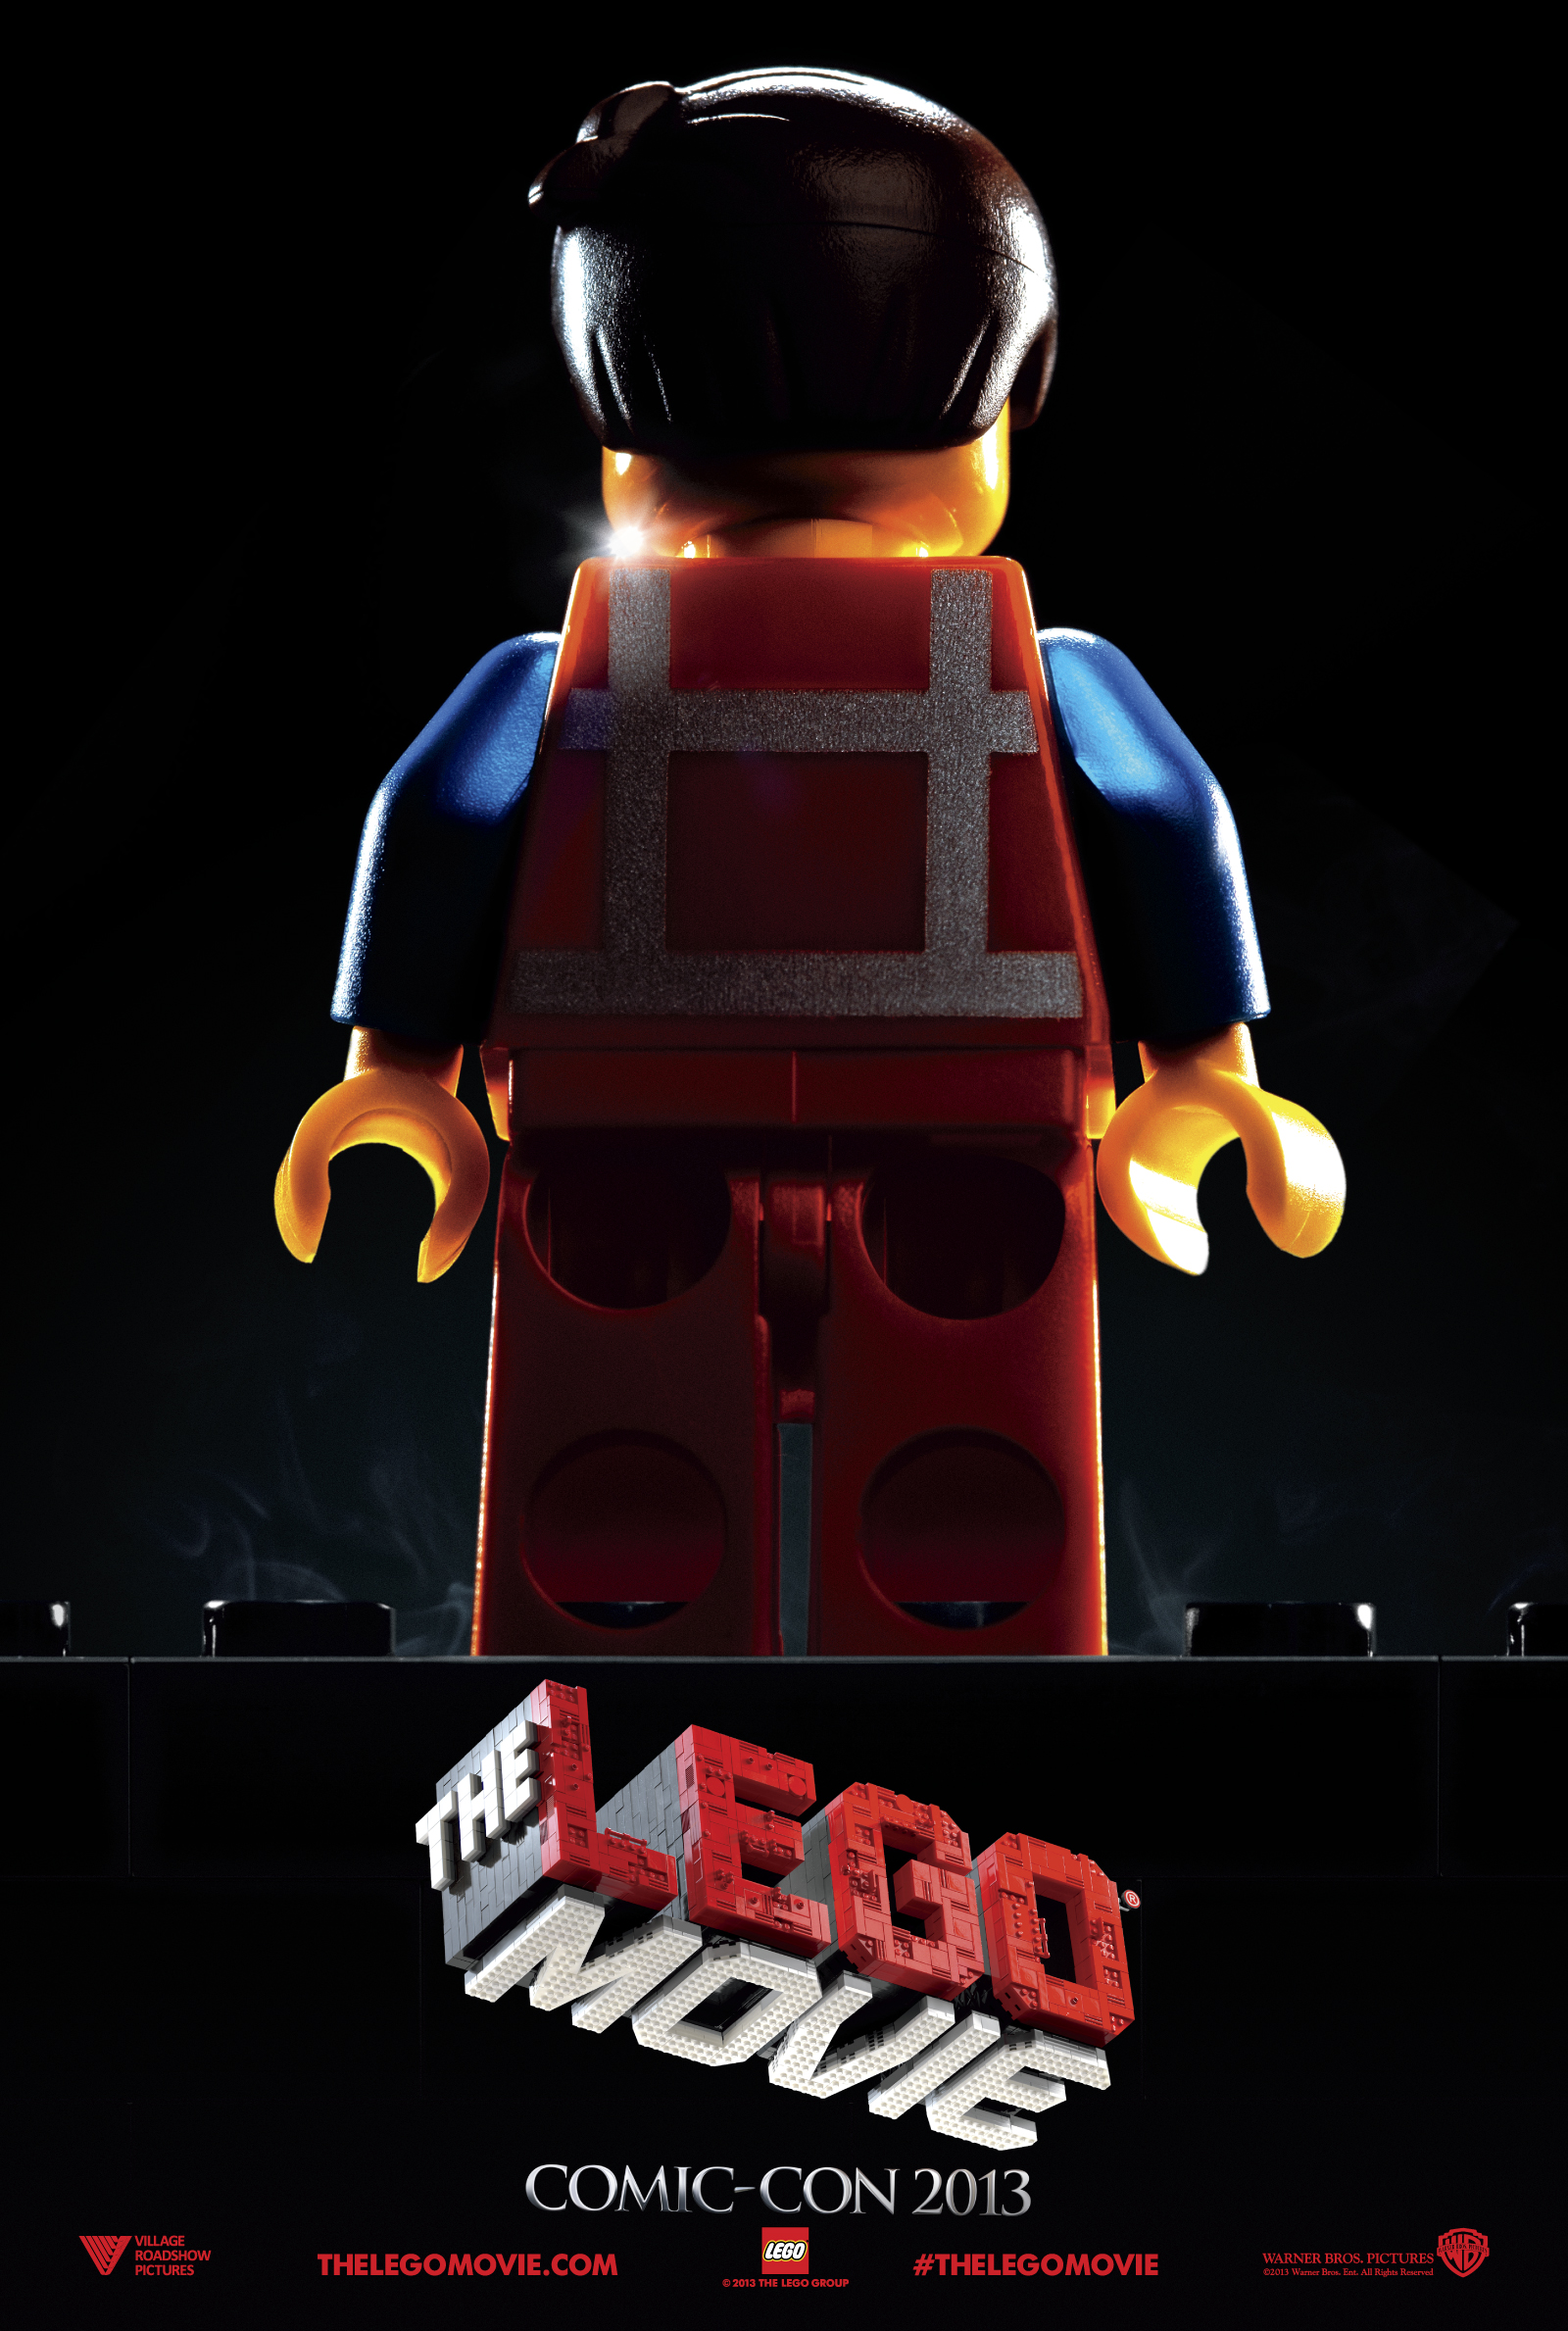 The Lego Movie Preview Meet Emmet